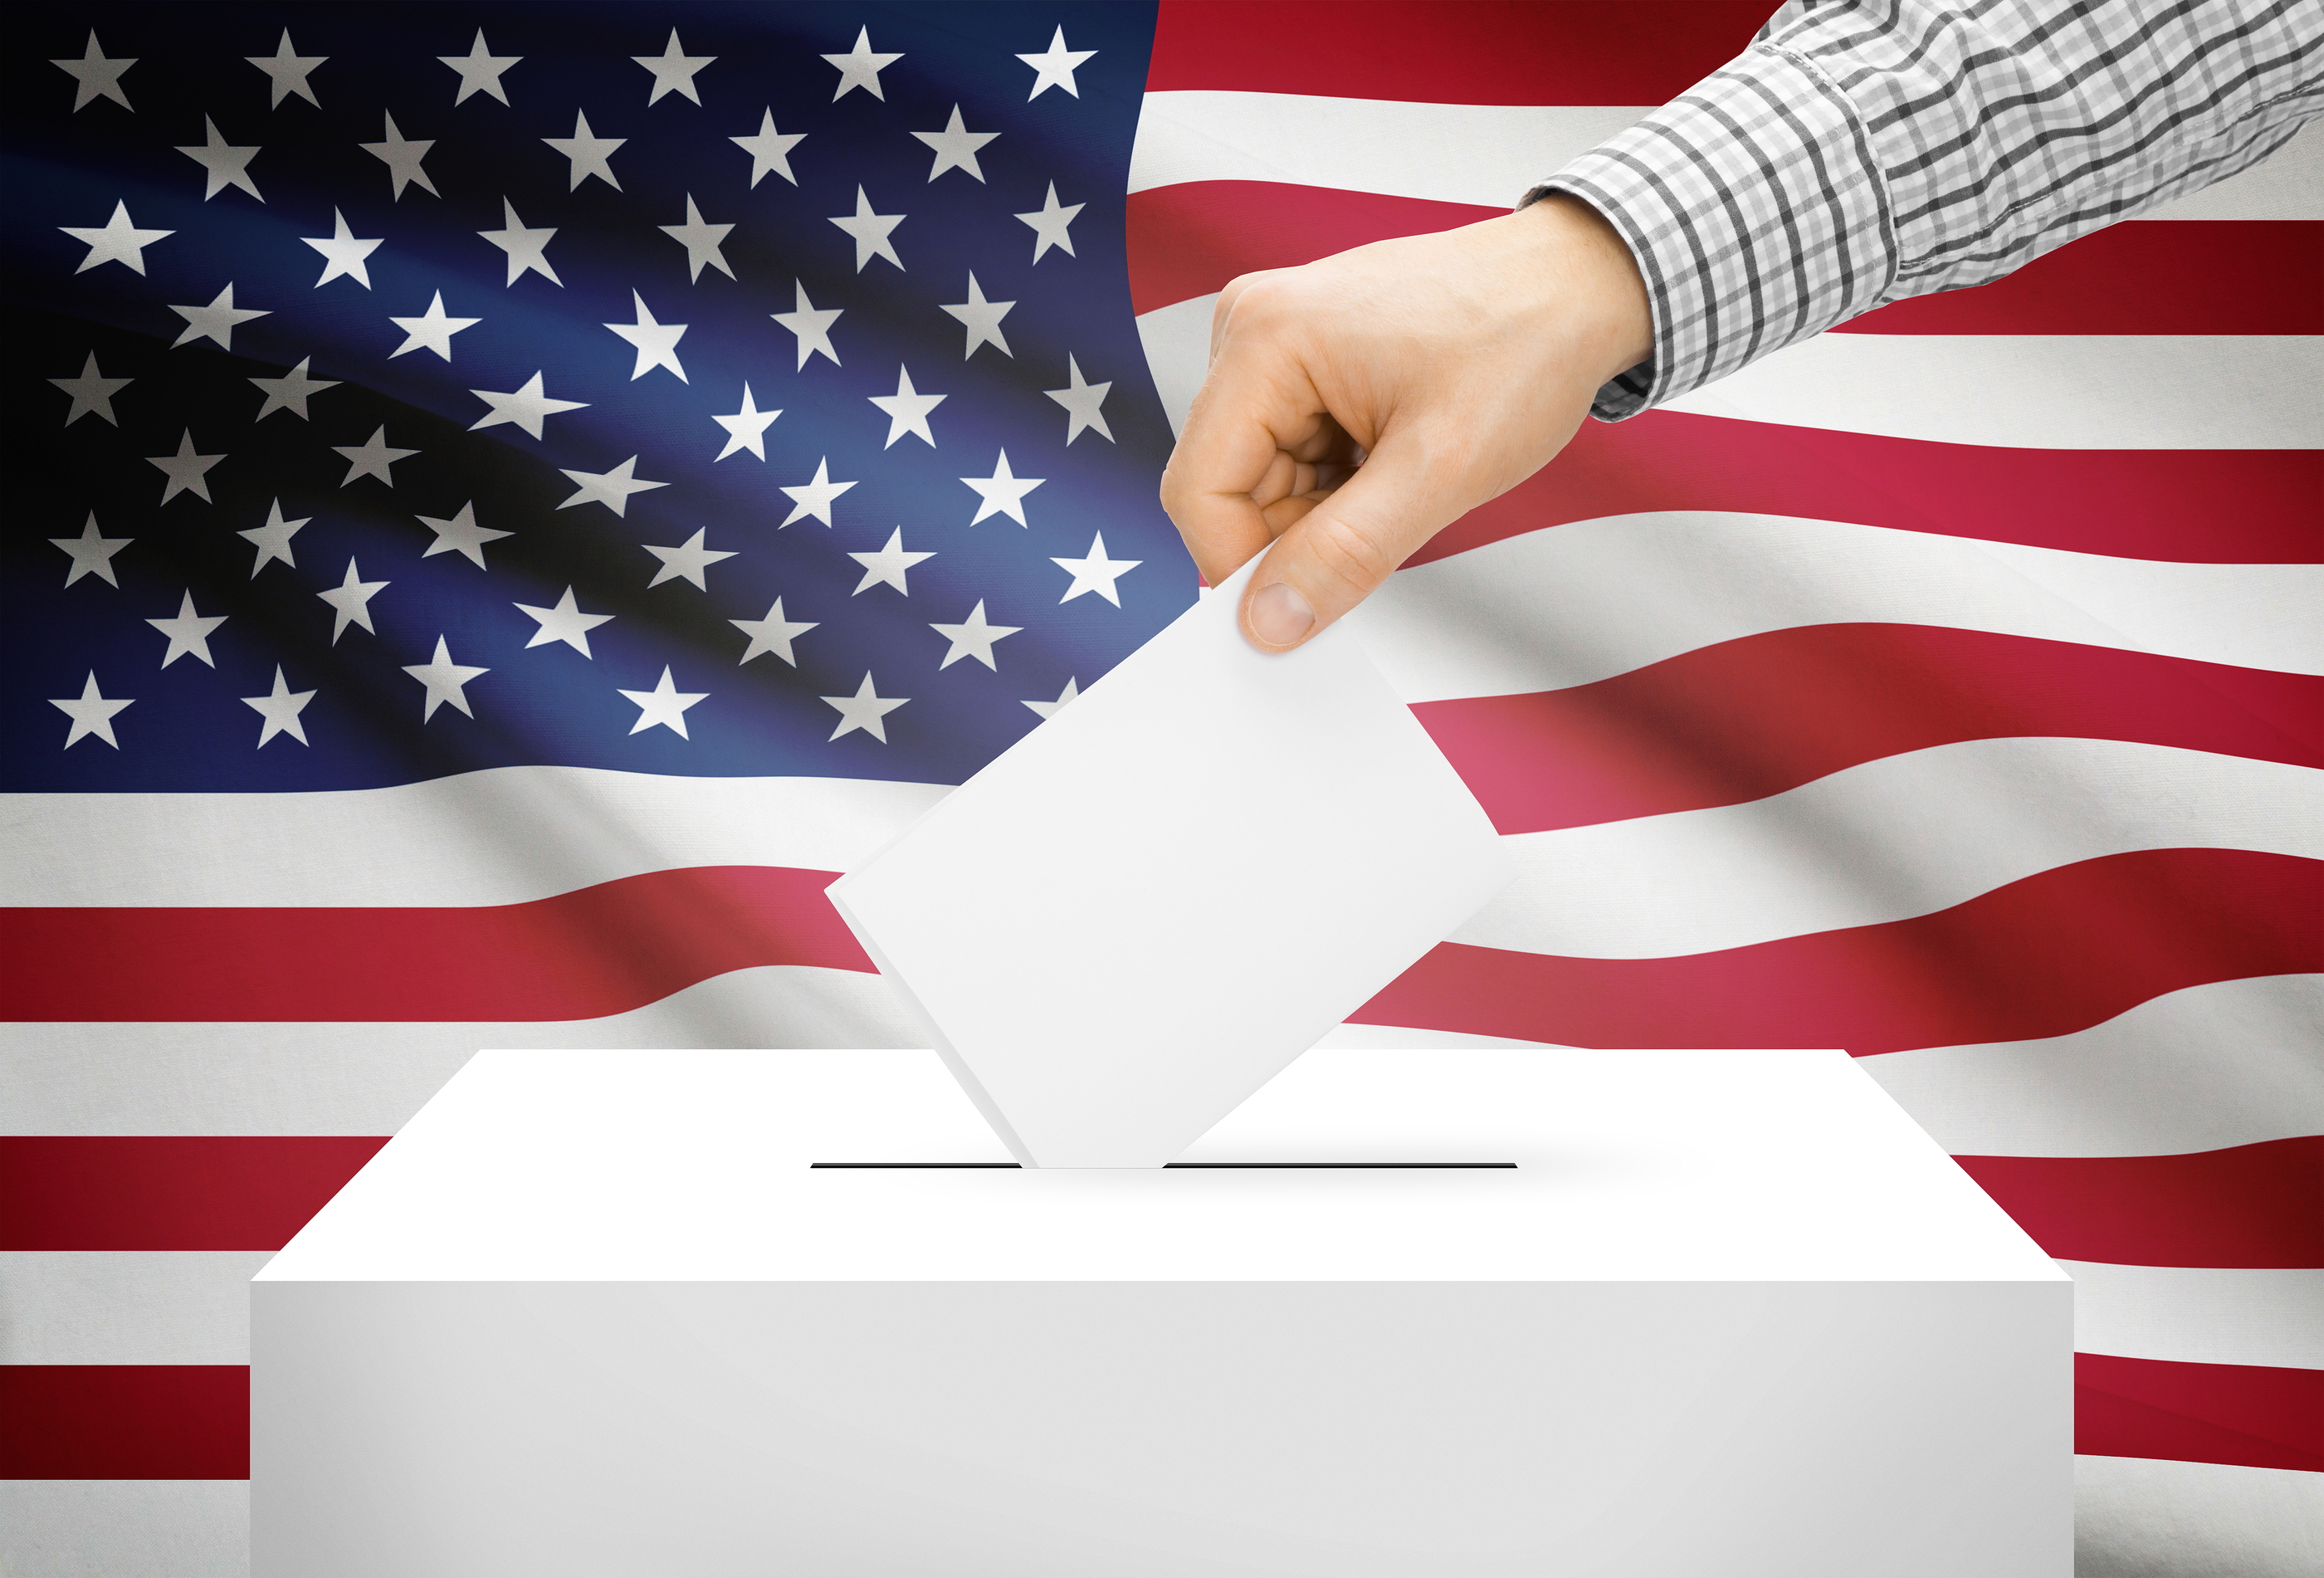 election wallpaper,flag,flag of the united states,flag day (usa),gesture,hand